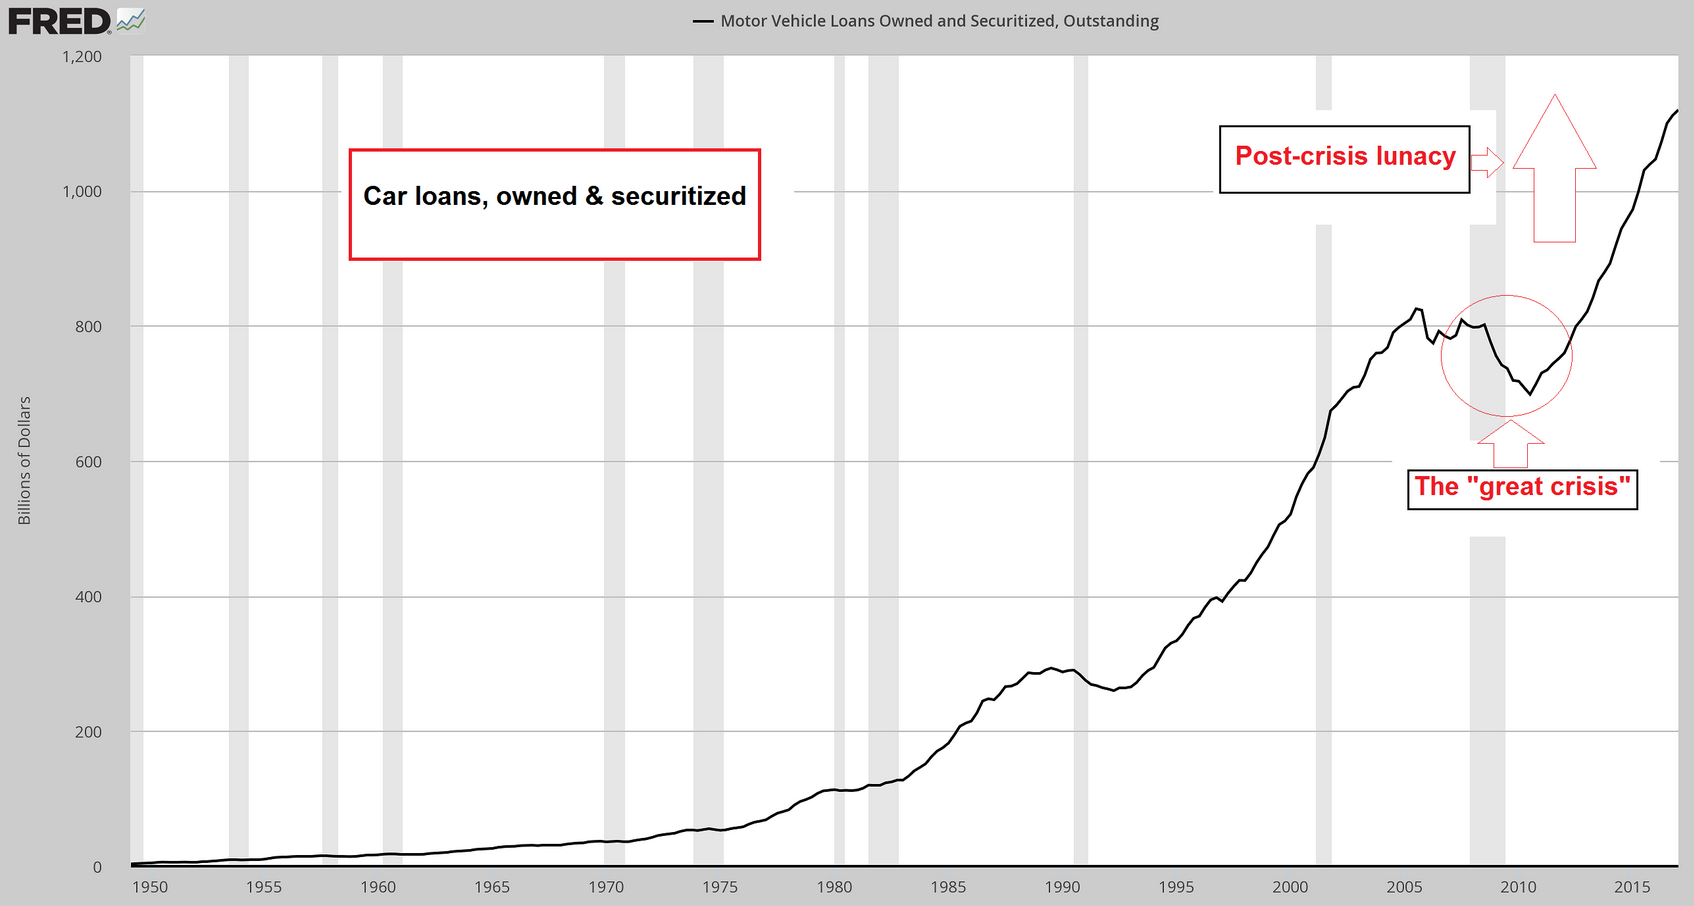 Motor Vehicle Loans Owned and Securitized 1950-2017